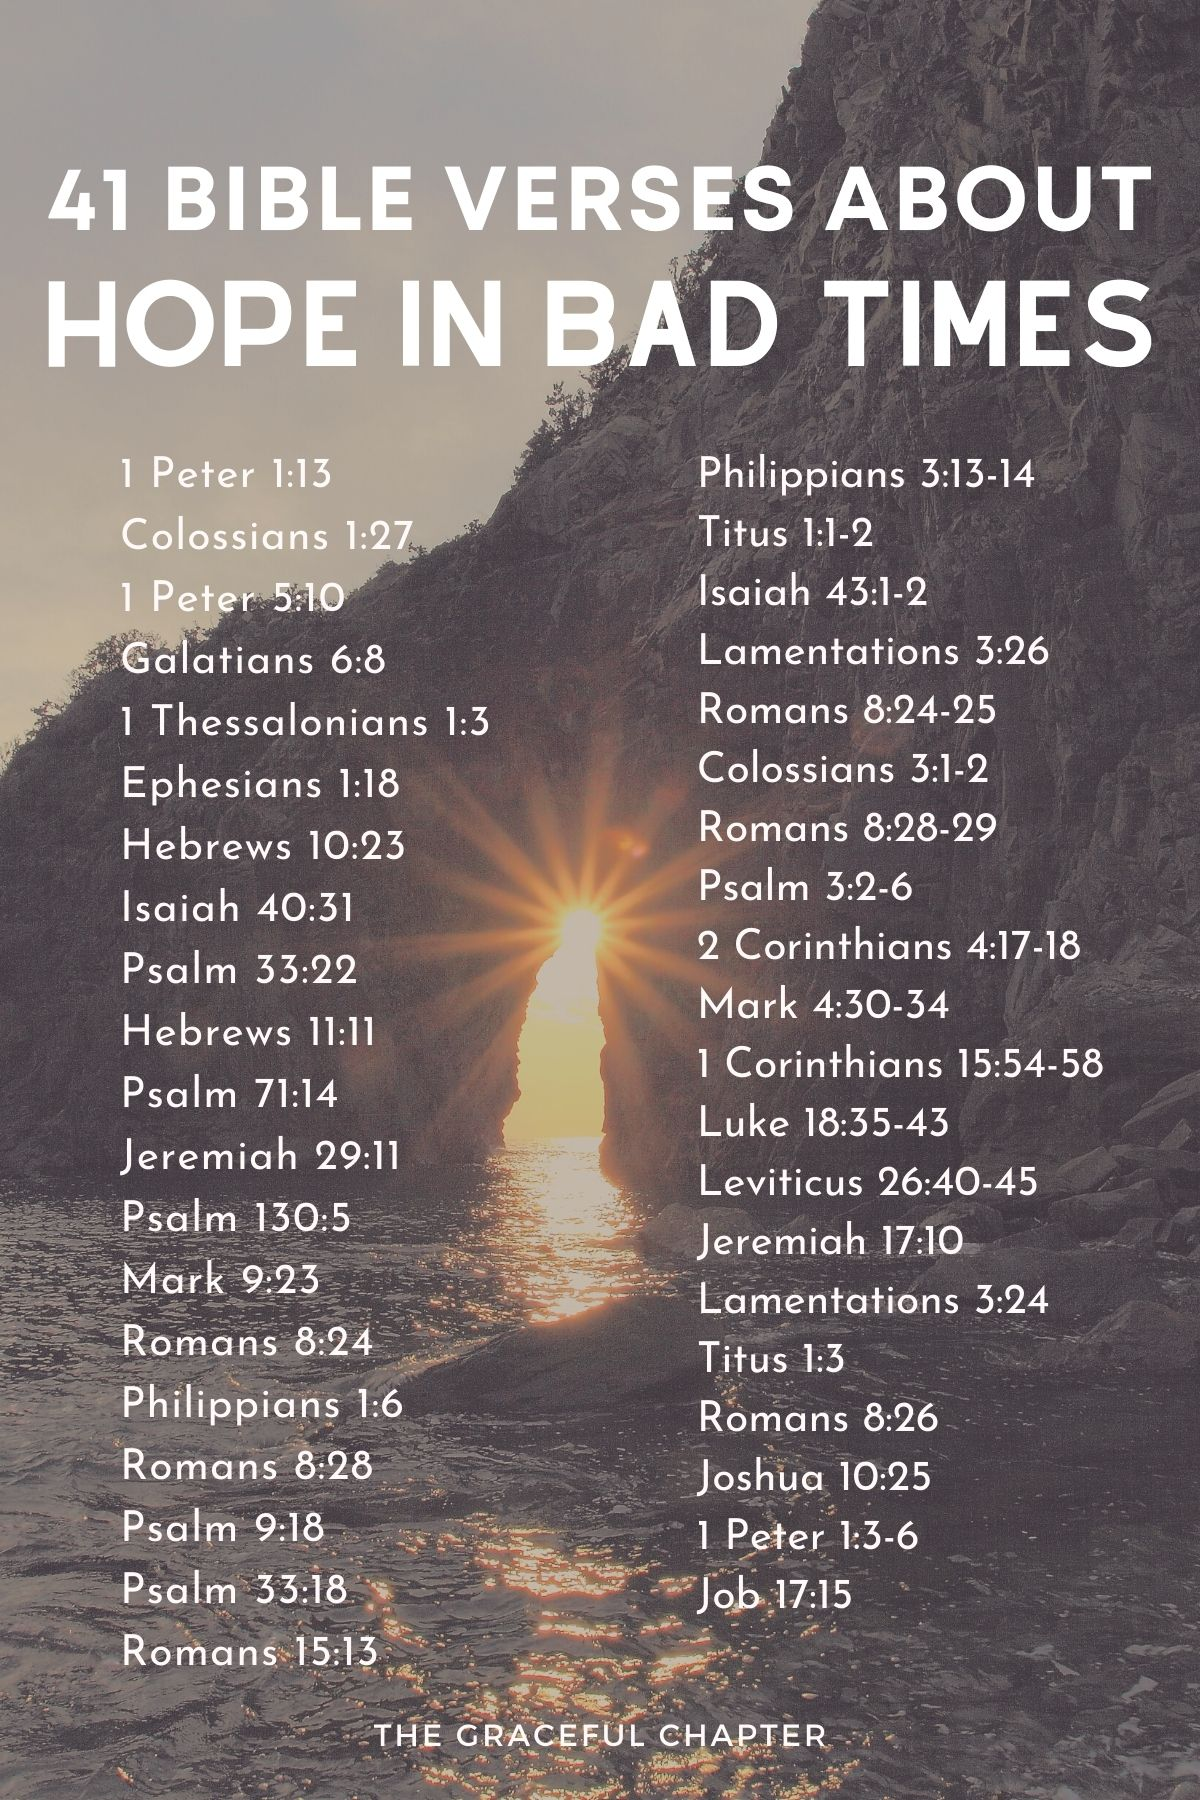 bible verses for hope in bad times